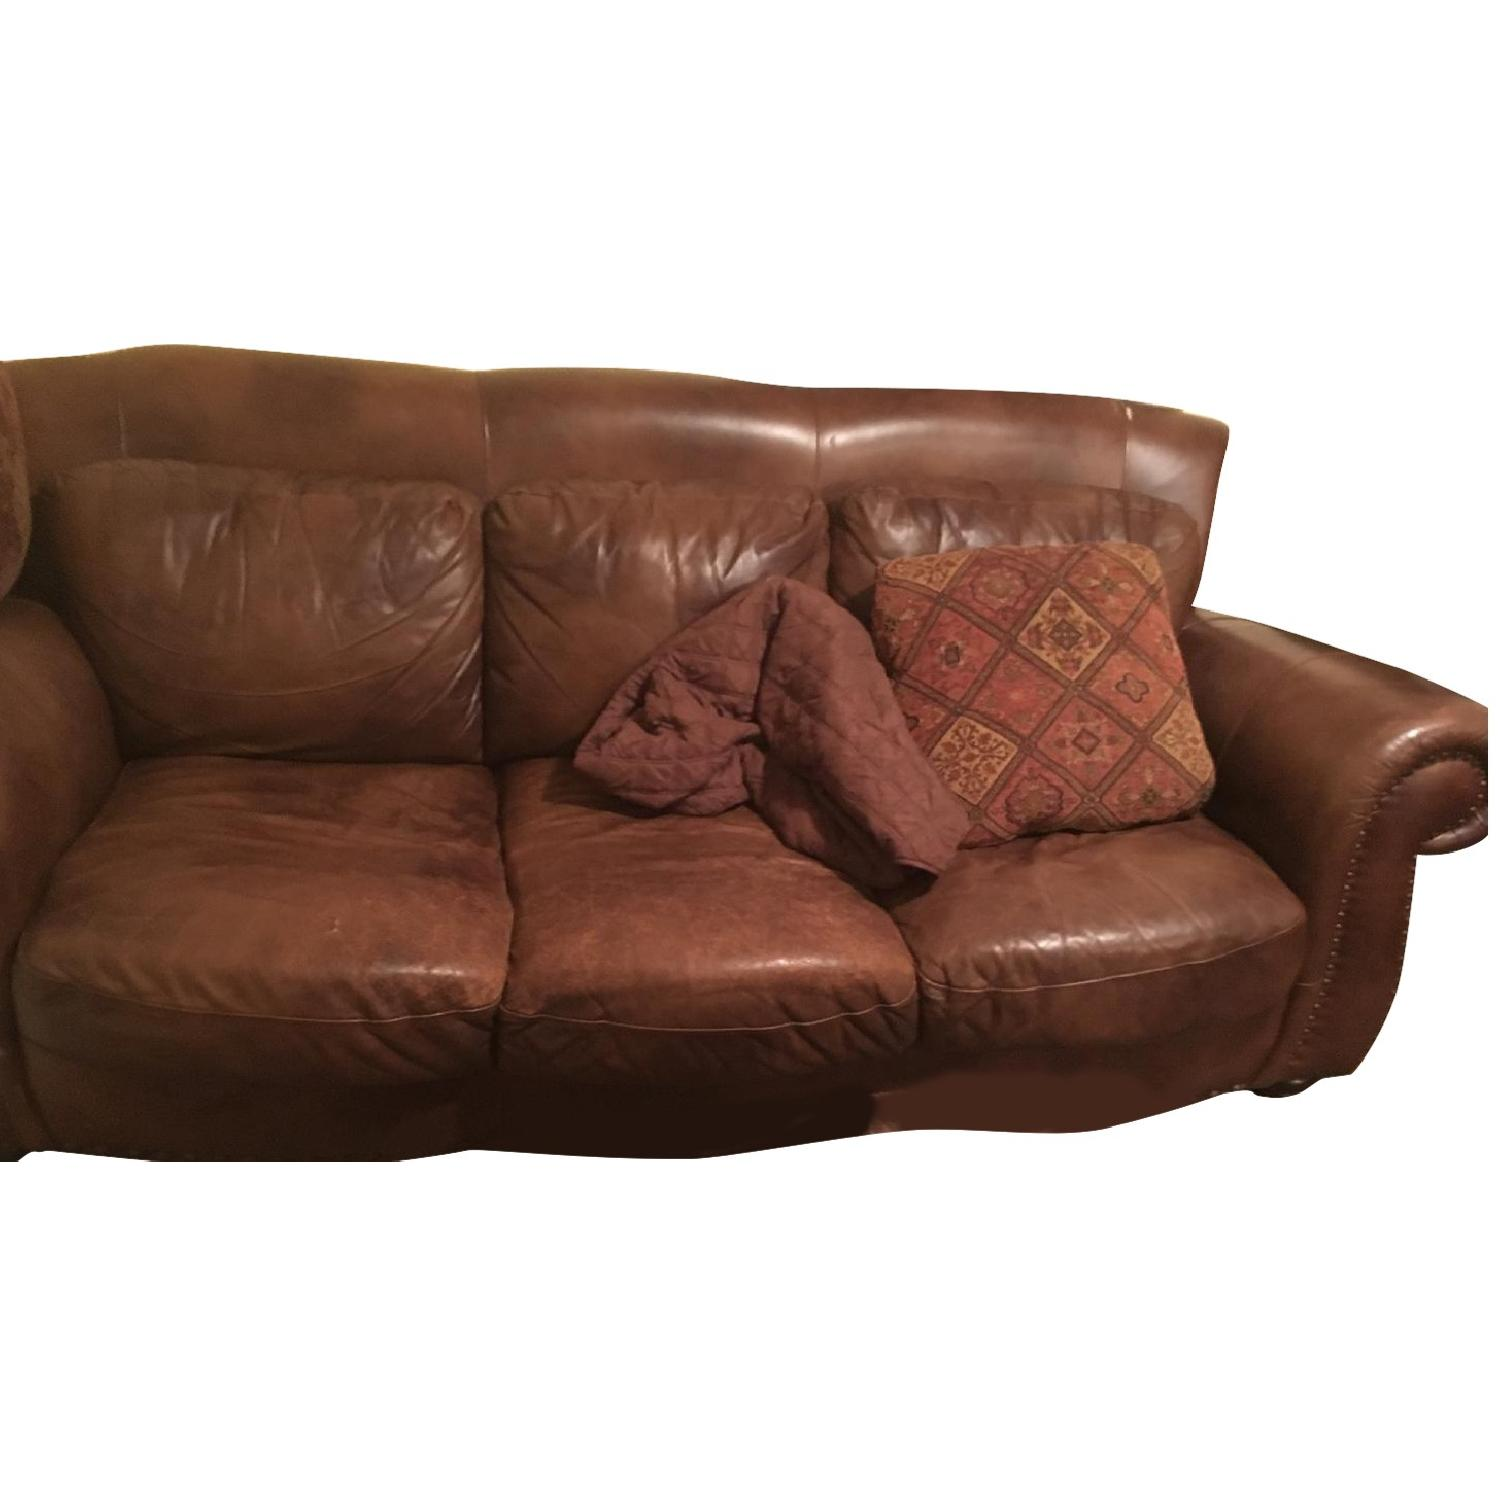 Raymour & Flanigan Faux Leather Sofa Loveseat Chair AptDeco